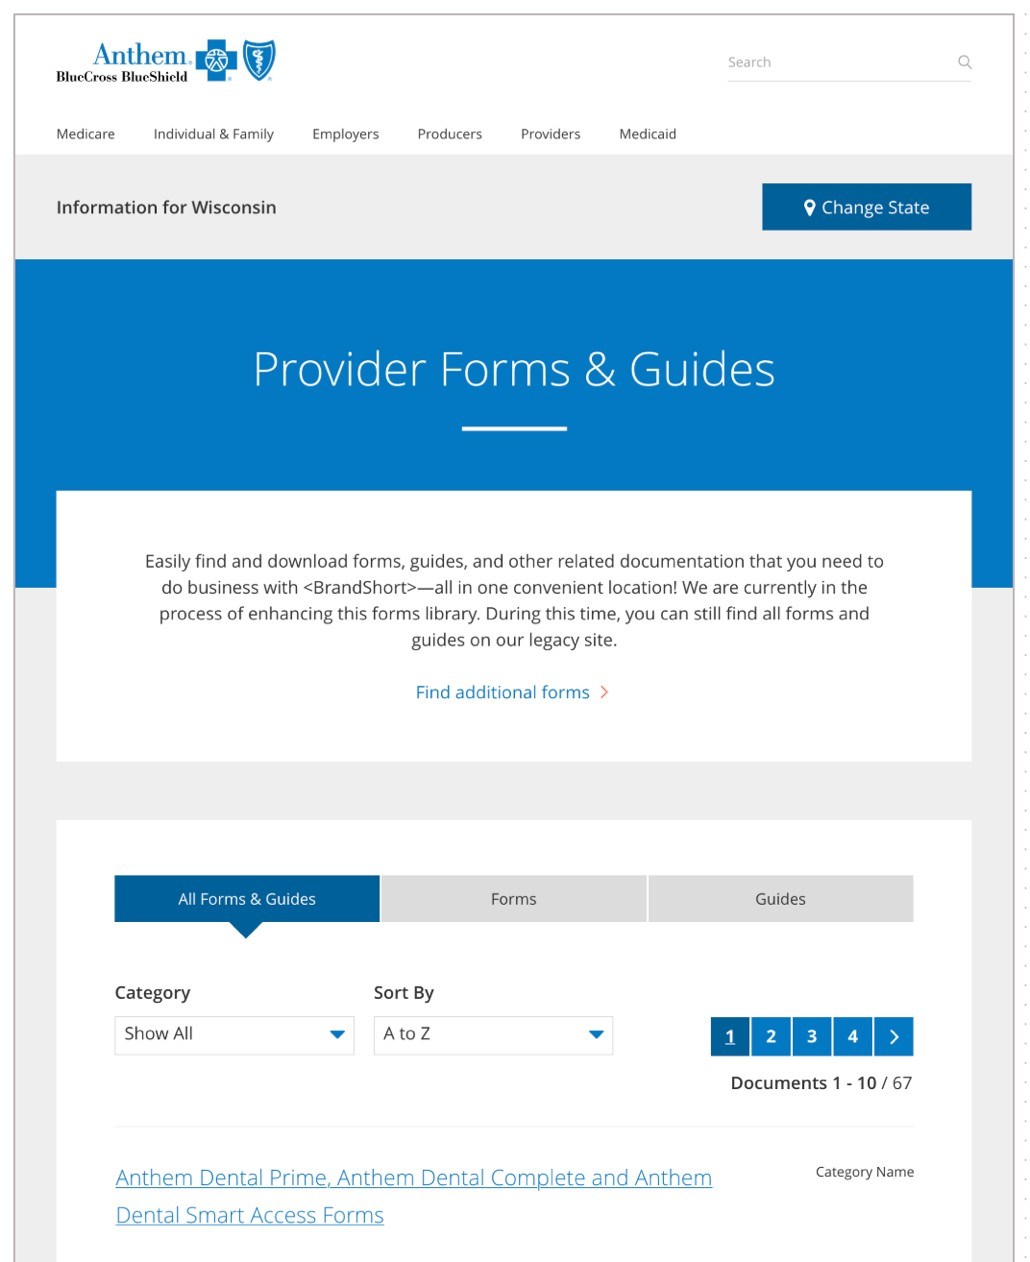 anthem.com forms and guides page